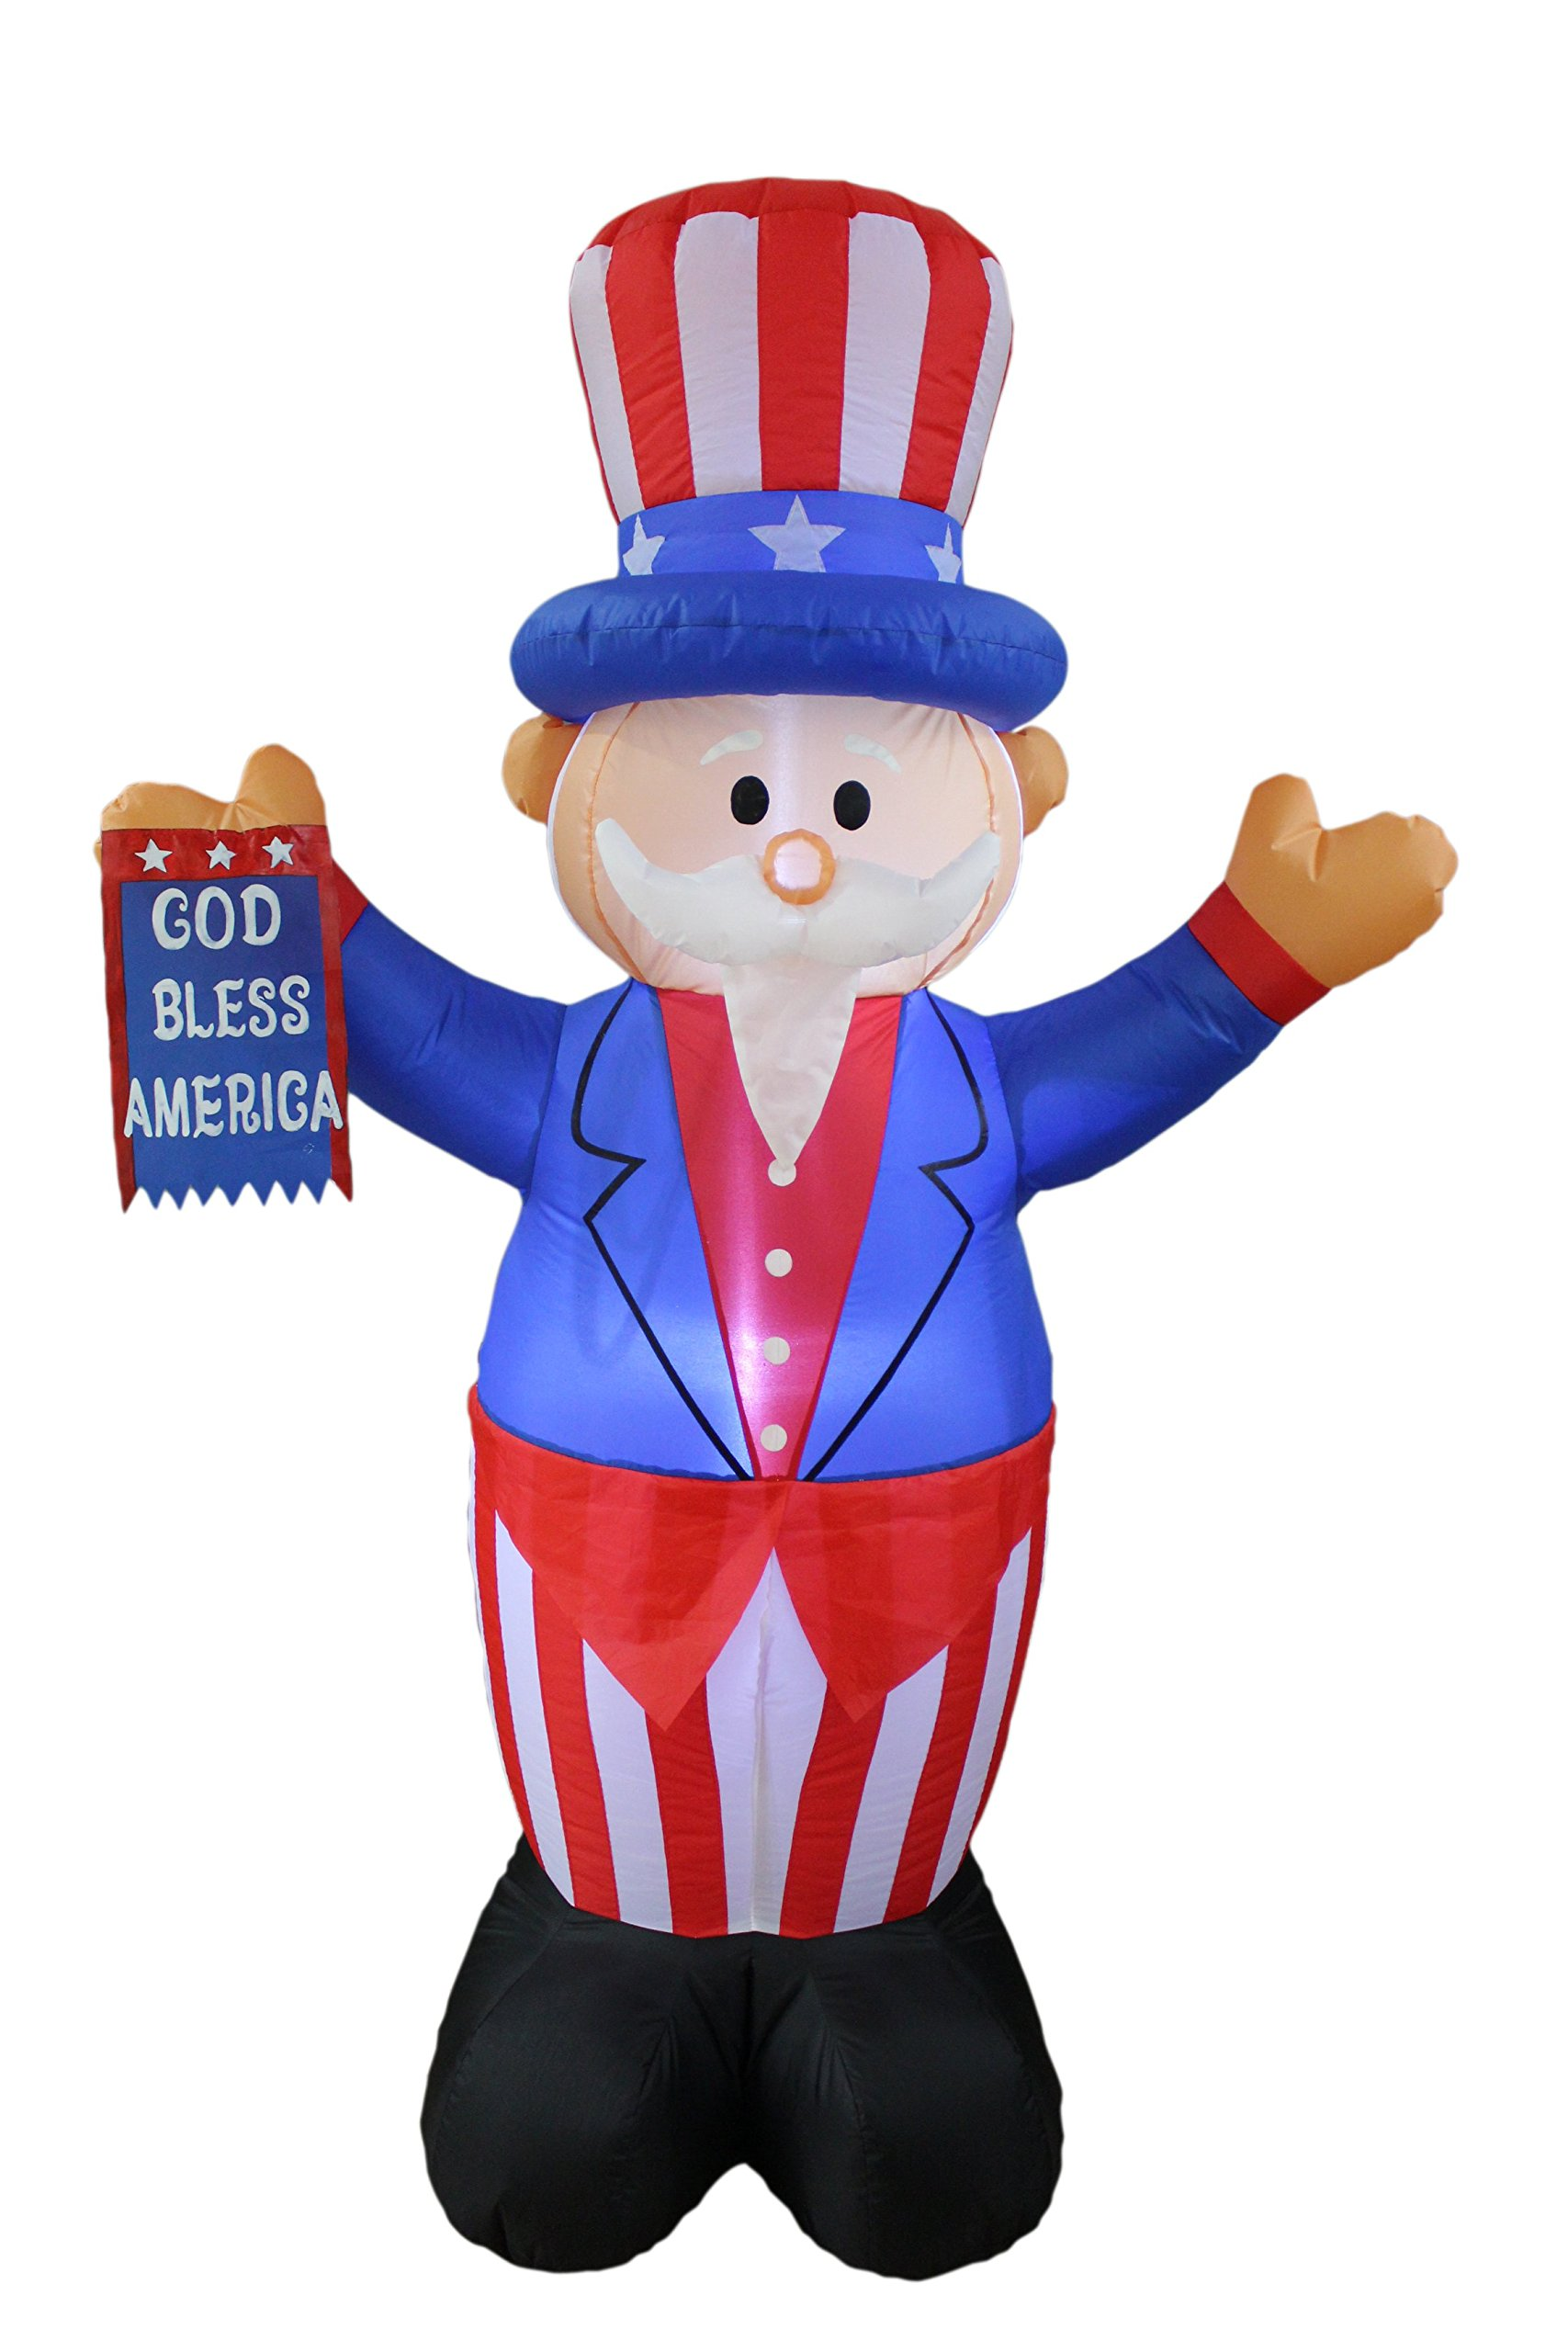 BZB Goods 6 Foot Tall Patriotic Independence Day 4th of July Inflatable Uncle Sam with God Bless America Flag Decoration